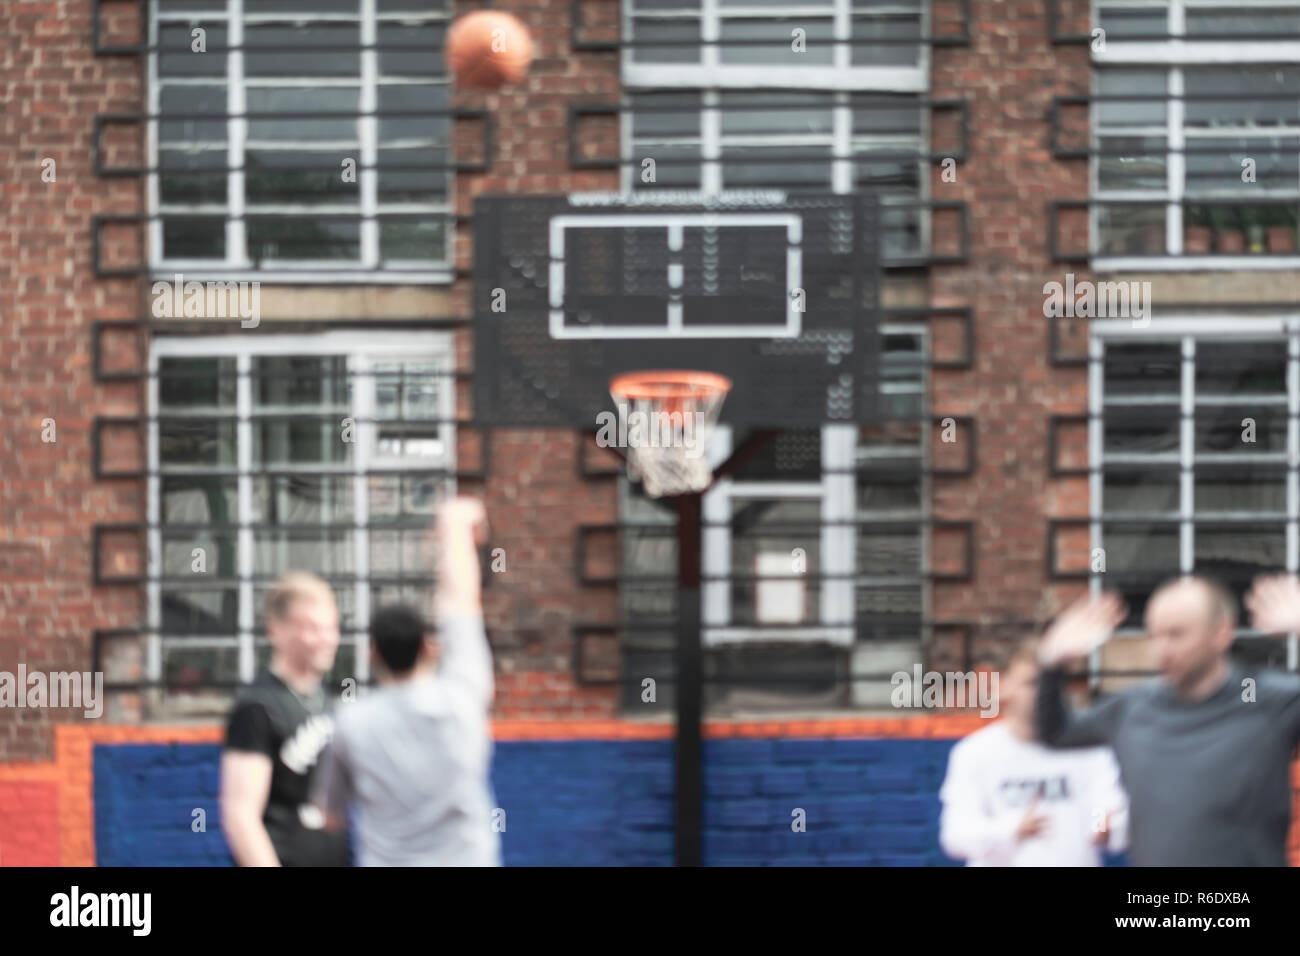 Street basketball. Youth, friends, play outside. Blurred background. Active lifestyle and sports among young people Stock Photo